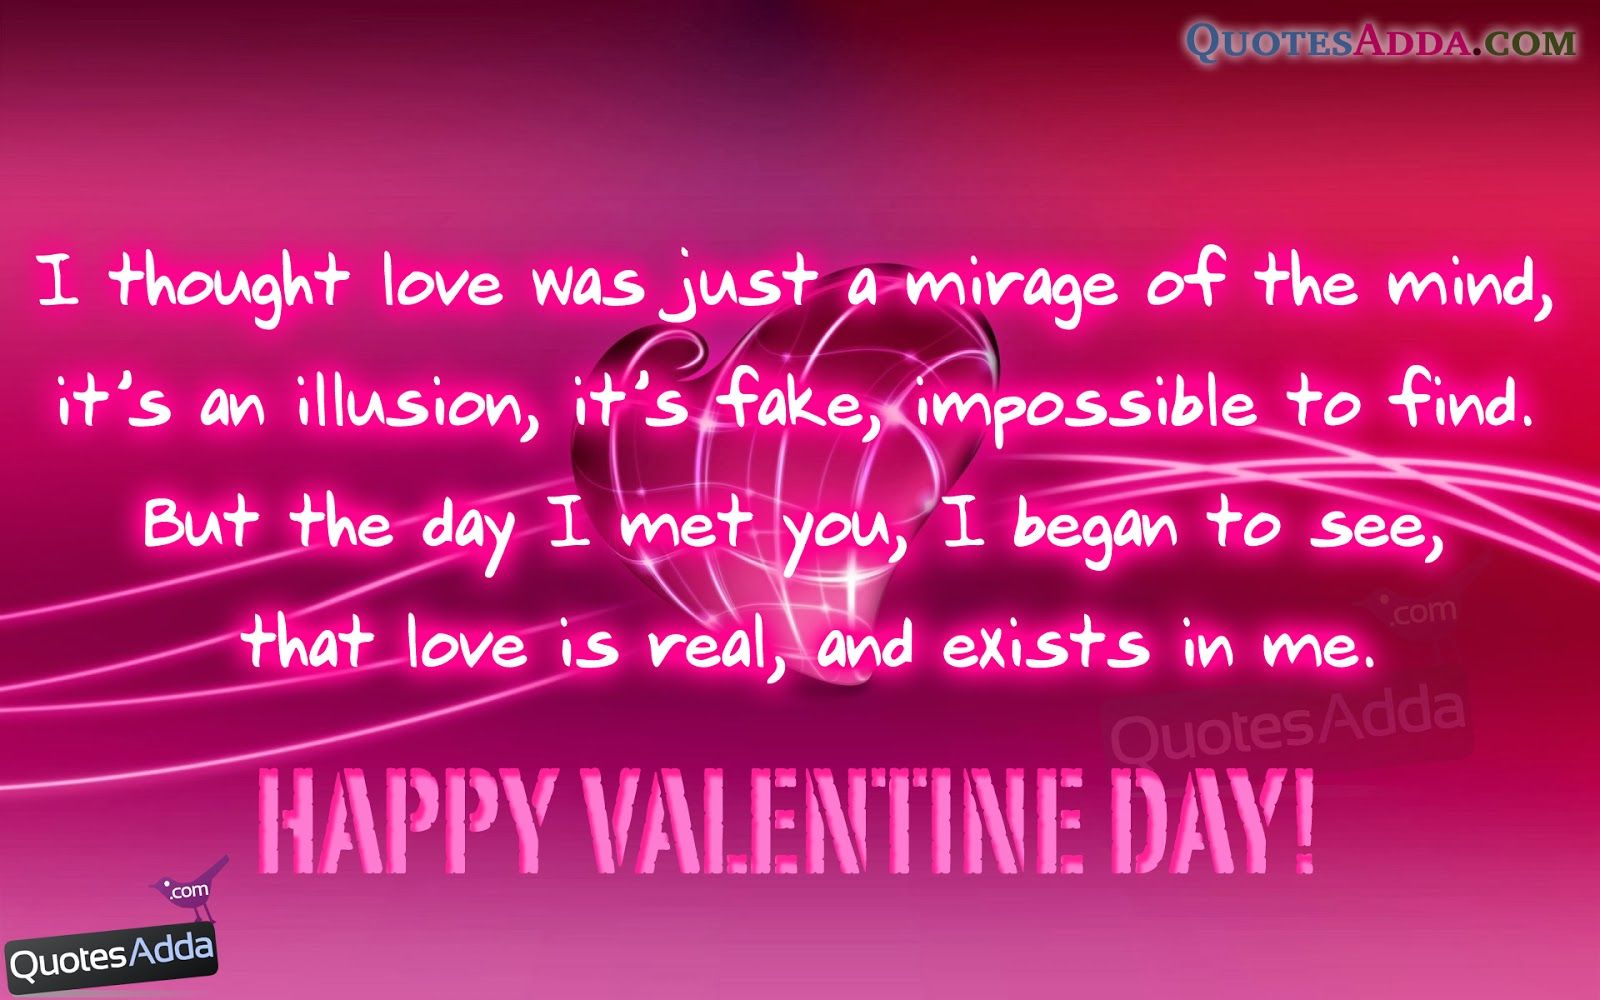 Love Quotes On Valentines Day For Her Love Quotes For Her In Kannada Happy Valentines Day 2014 Quotes